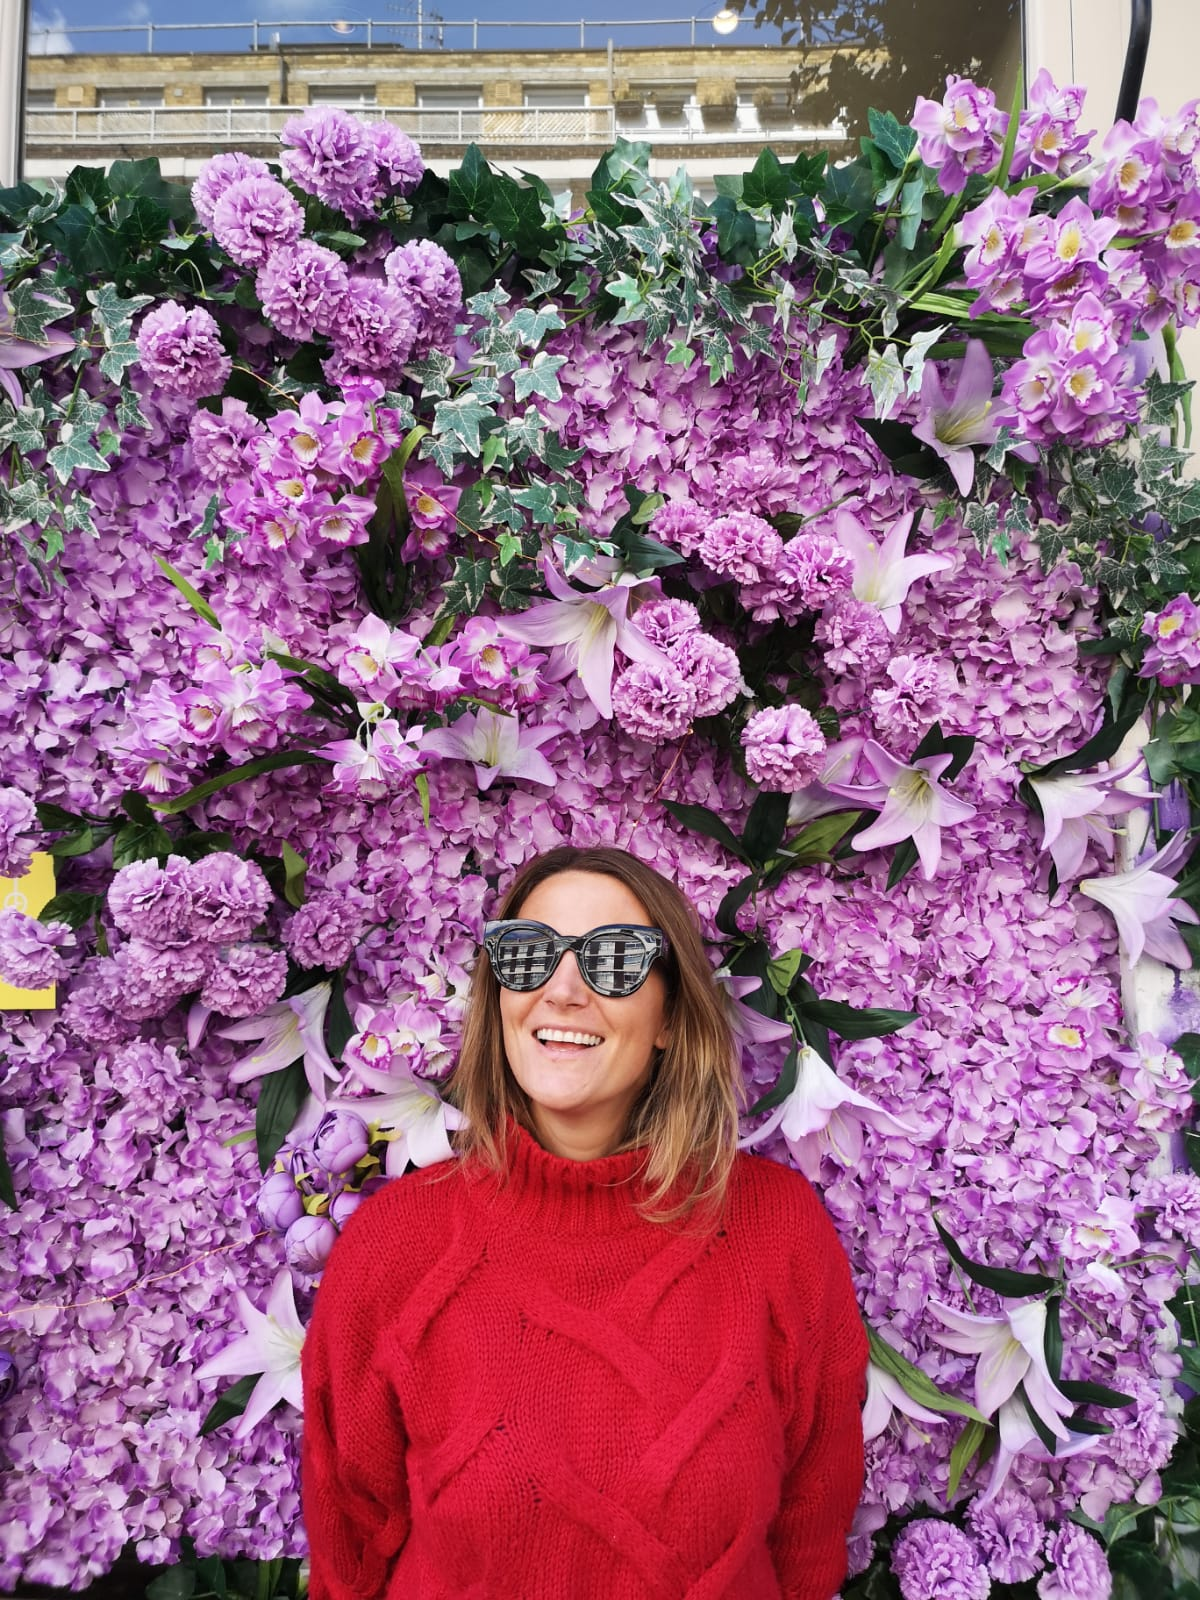 You don't need booze to have a good time, guys, just a huge flower wall…